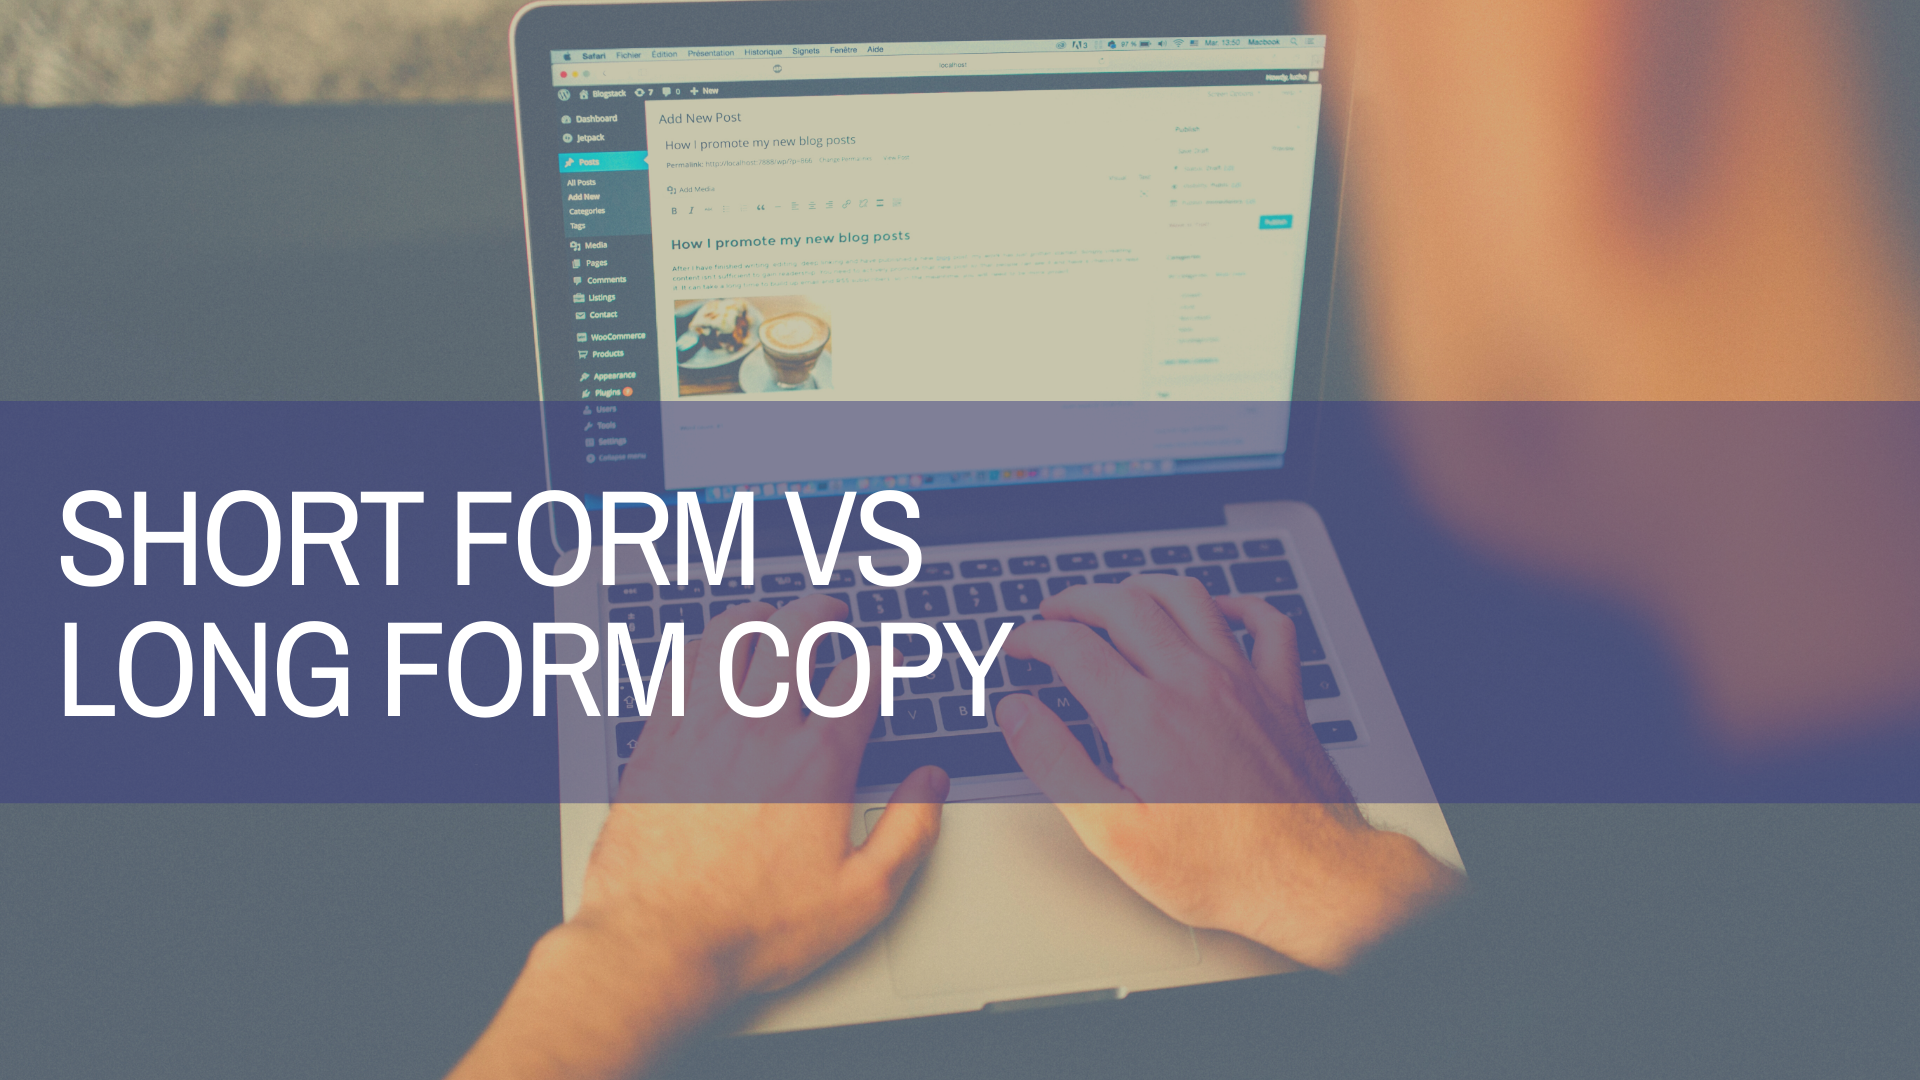 what is short form copy? what is long form copy?